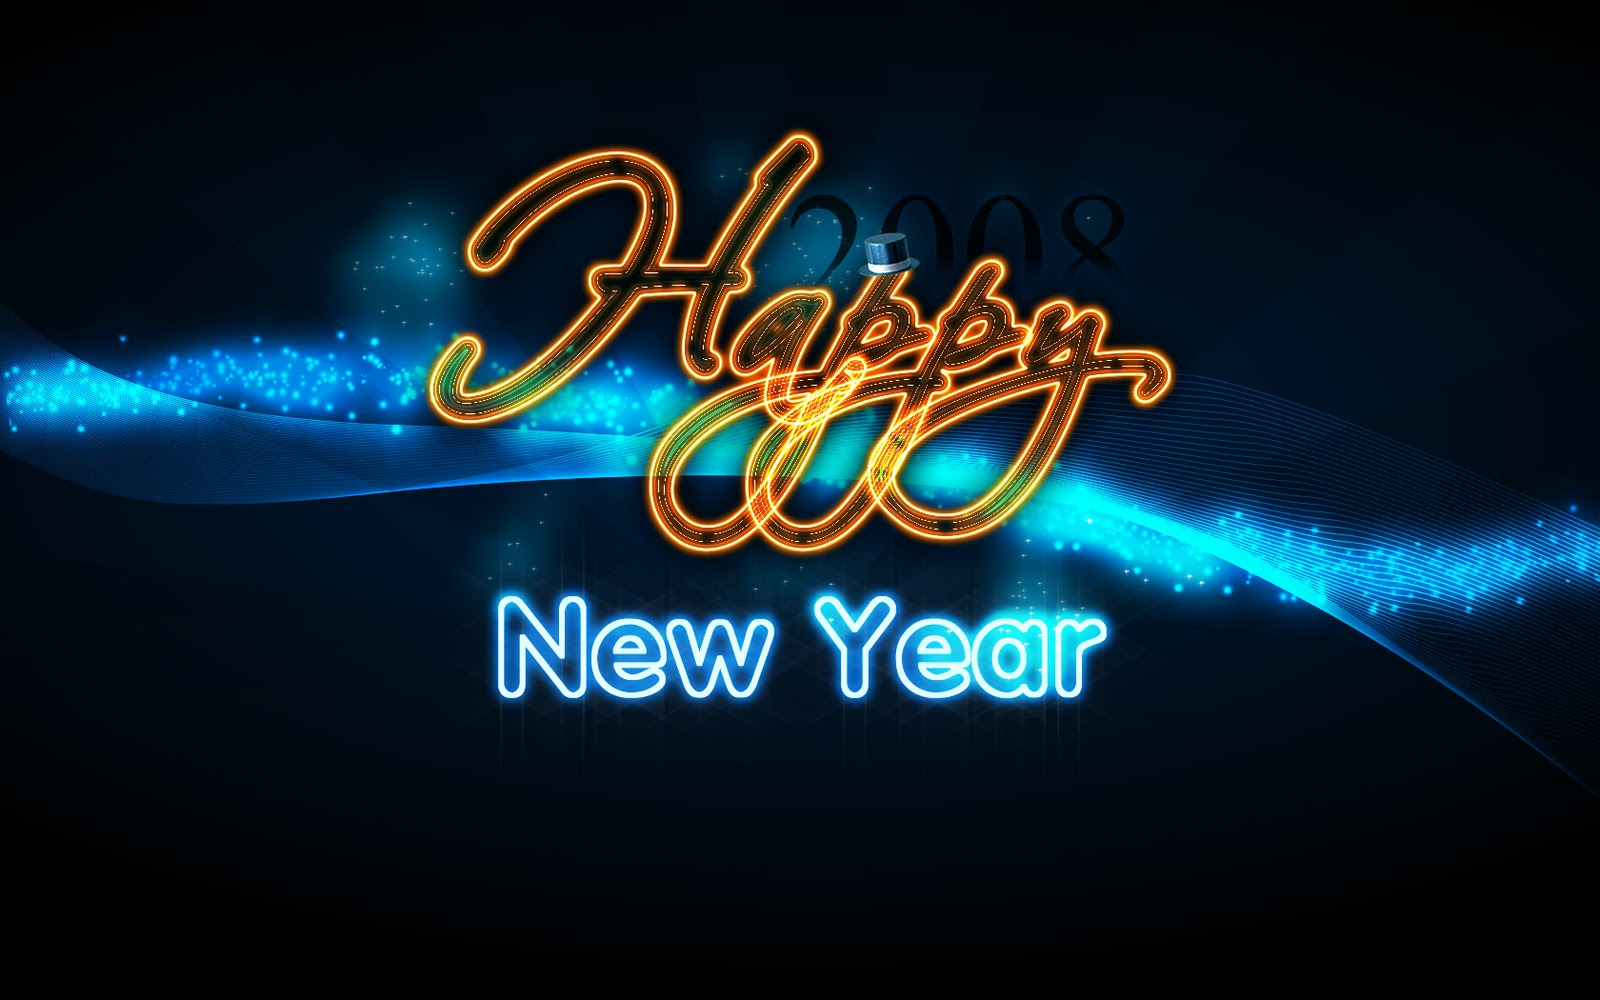 http://3.bp.blogspot.com/-ngc2MX_gYi8/TuoPfg2Kf3I/AAAAAAAABrE/qDVdKLcuJxU/s1600/Happy-New-Year-pictures-pc-desktop-Wallpapers-HD-photo-images-5.jpg